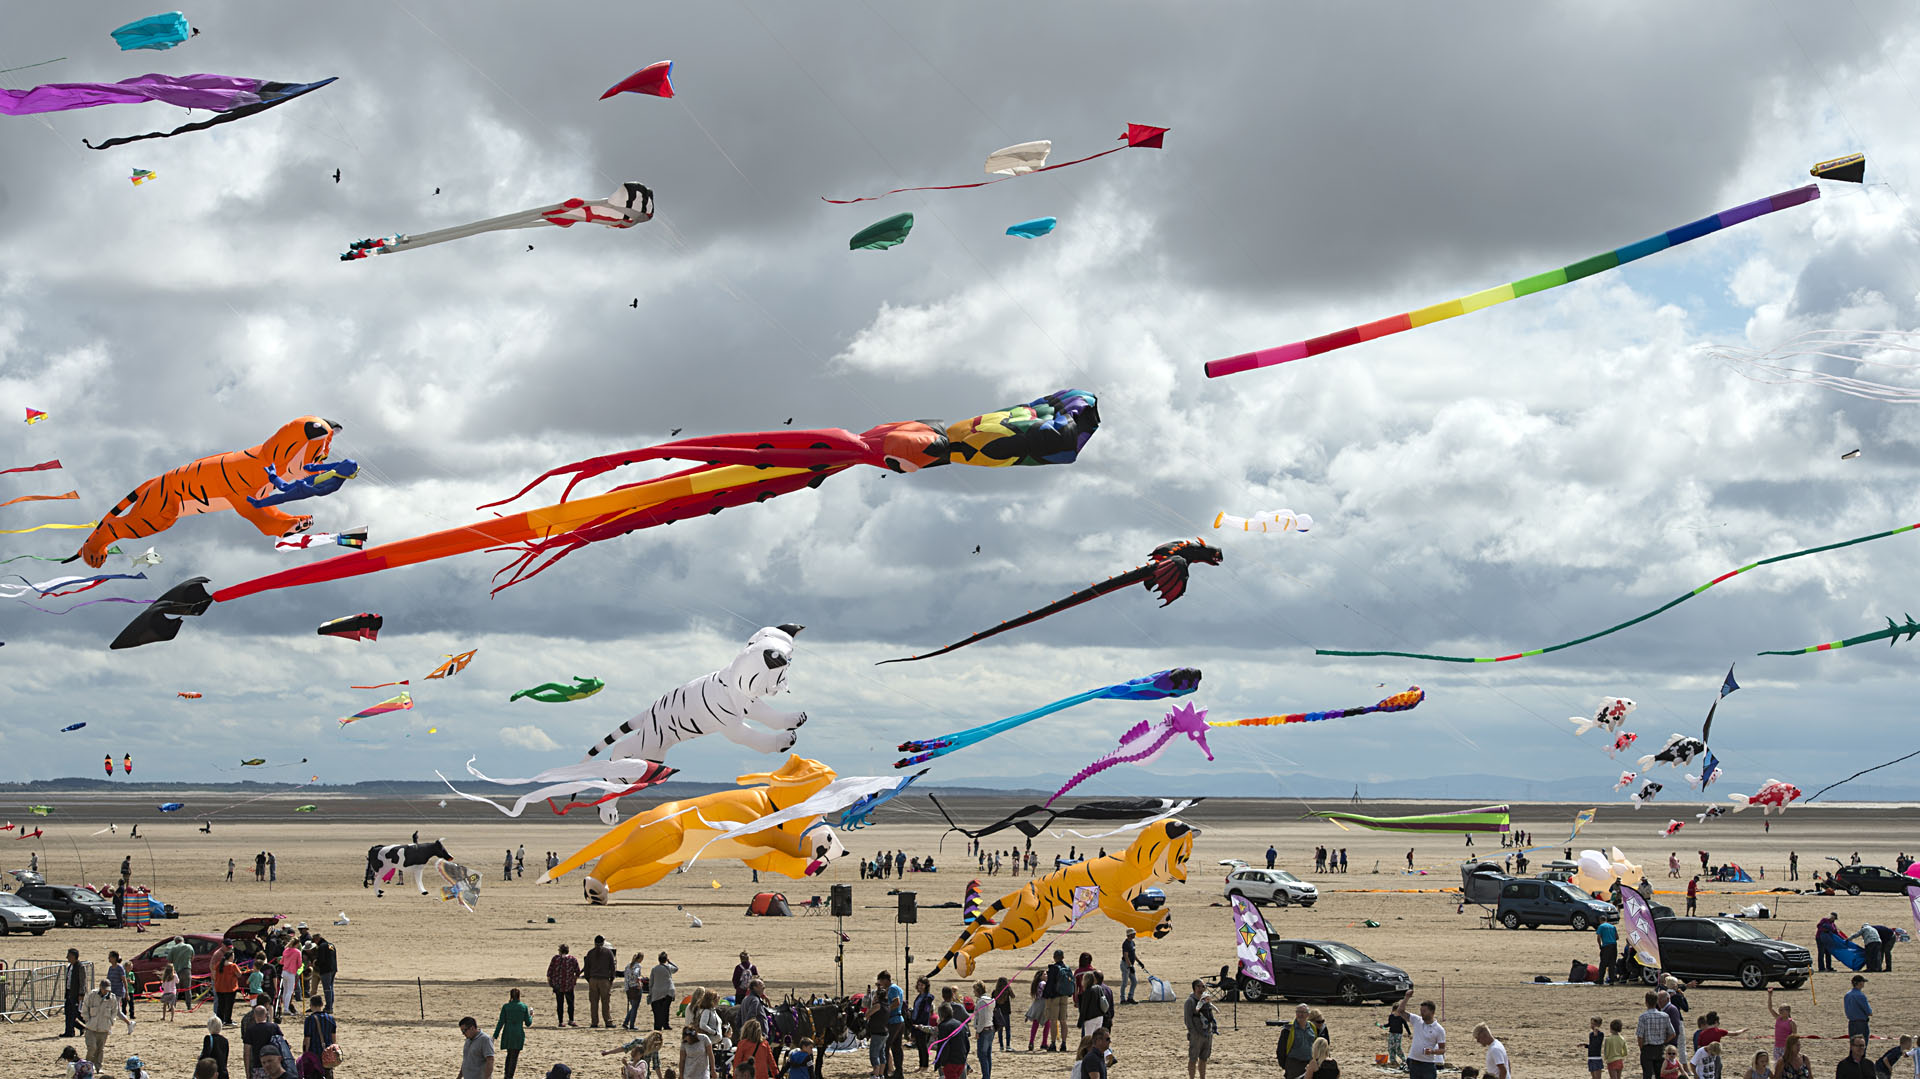 Members of the public relax on the beach as kite enthusiasts participate in the St Annes Kite Festival on the seafront in Lytham St Annes, north west England on July 30, 2016. / AFP PHOTO / OLI SCARFF